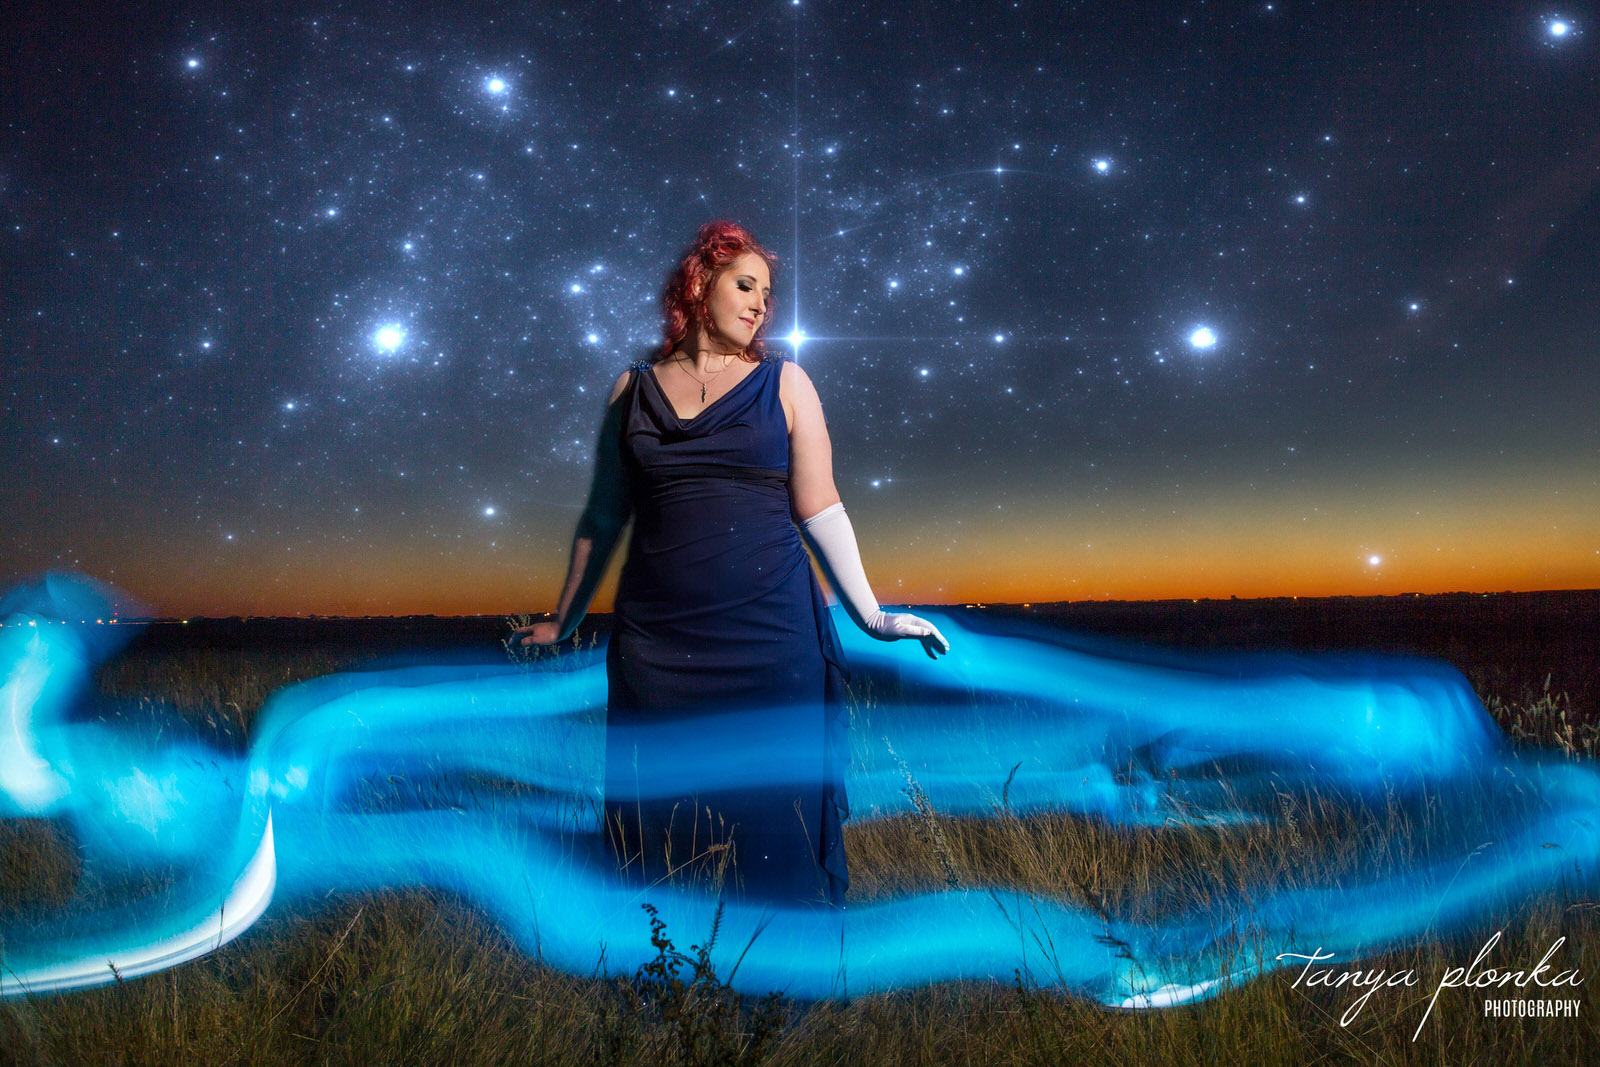 woman in blue dress stands with blue light swirling around her